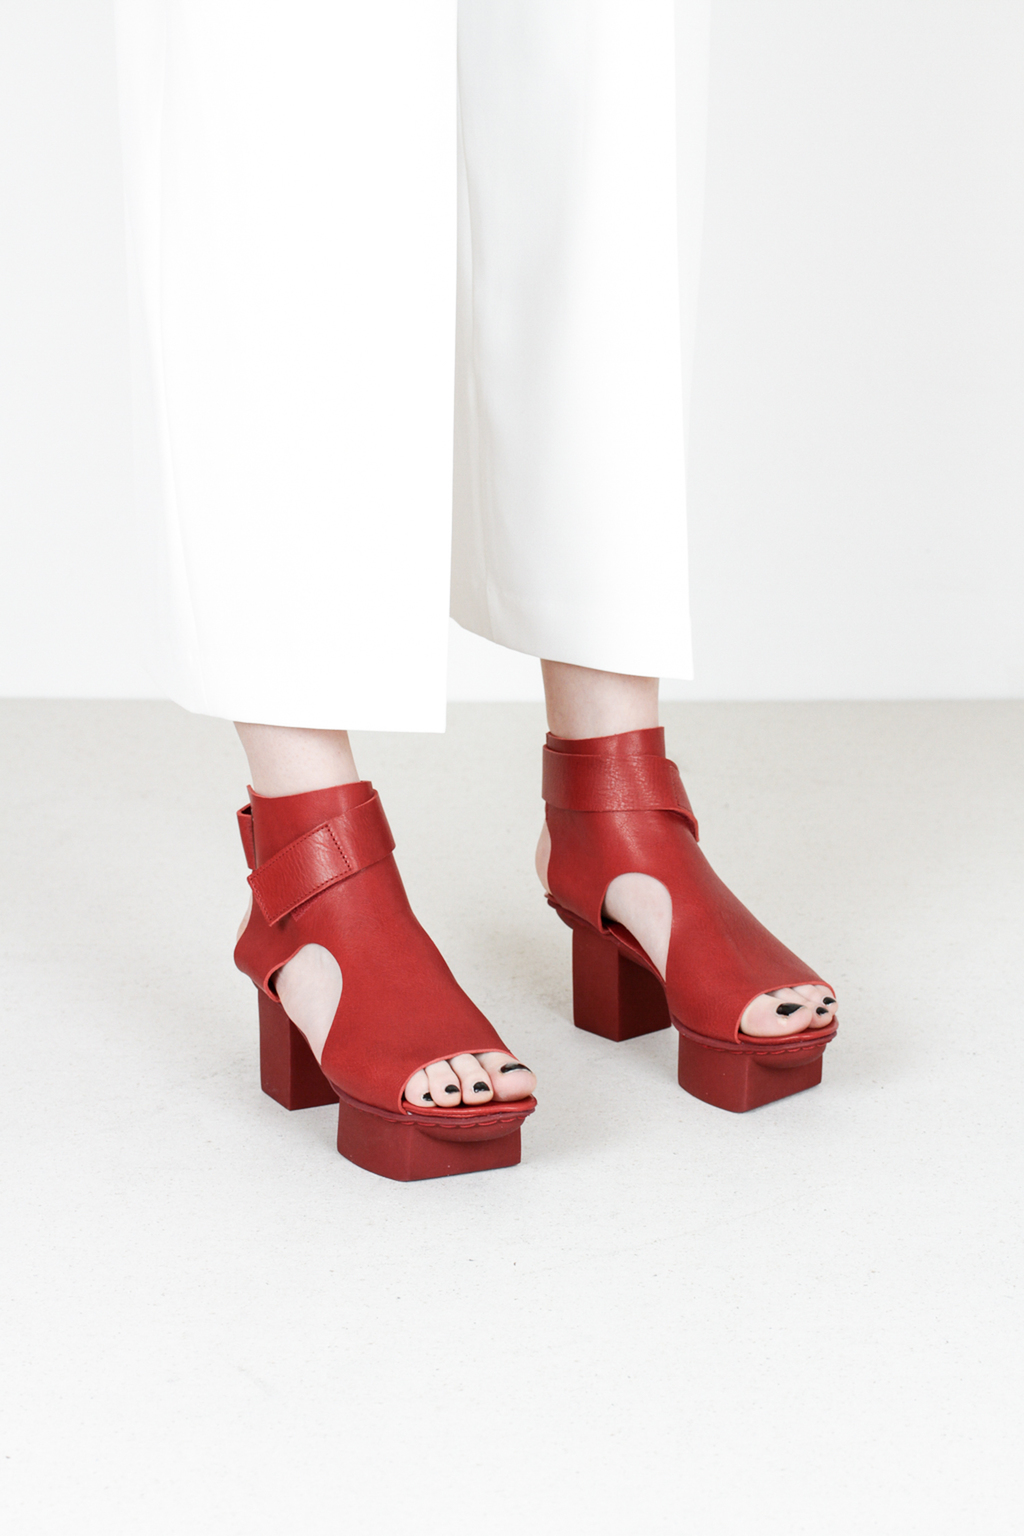 Trippen bollard f waw red leather sandals